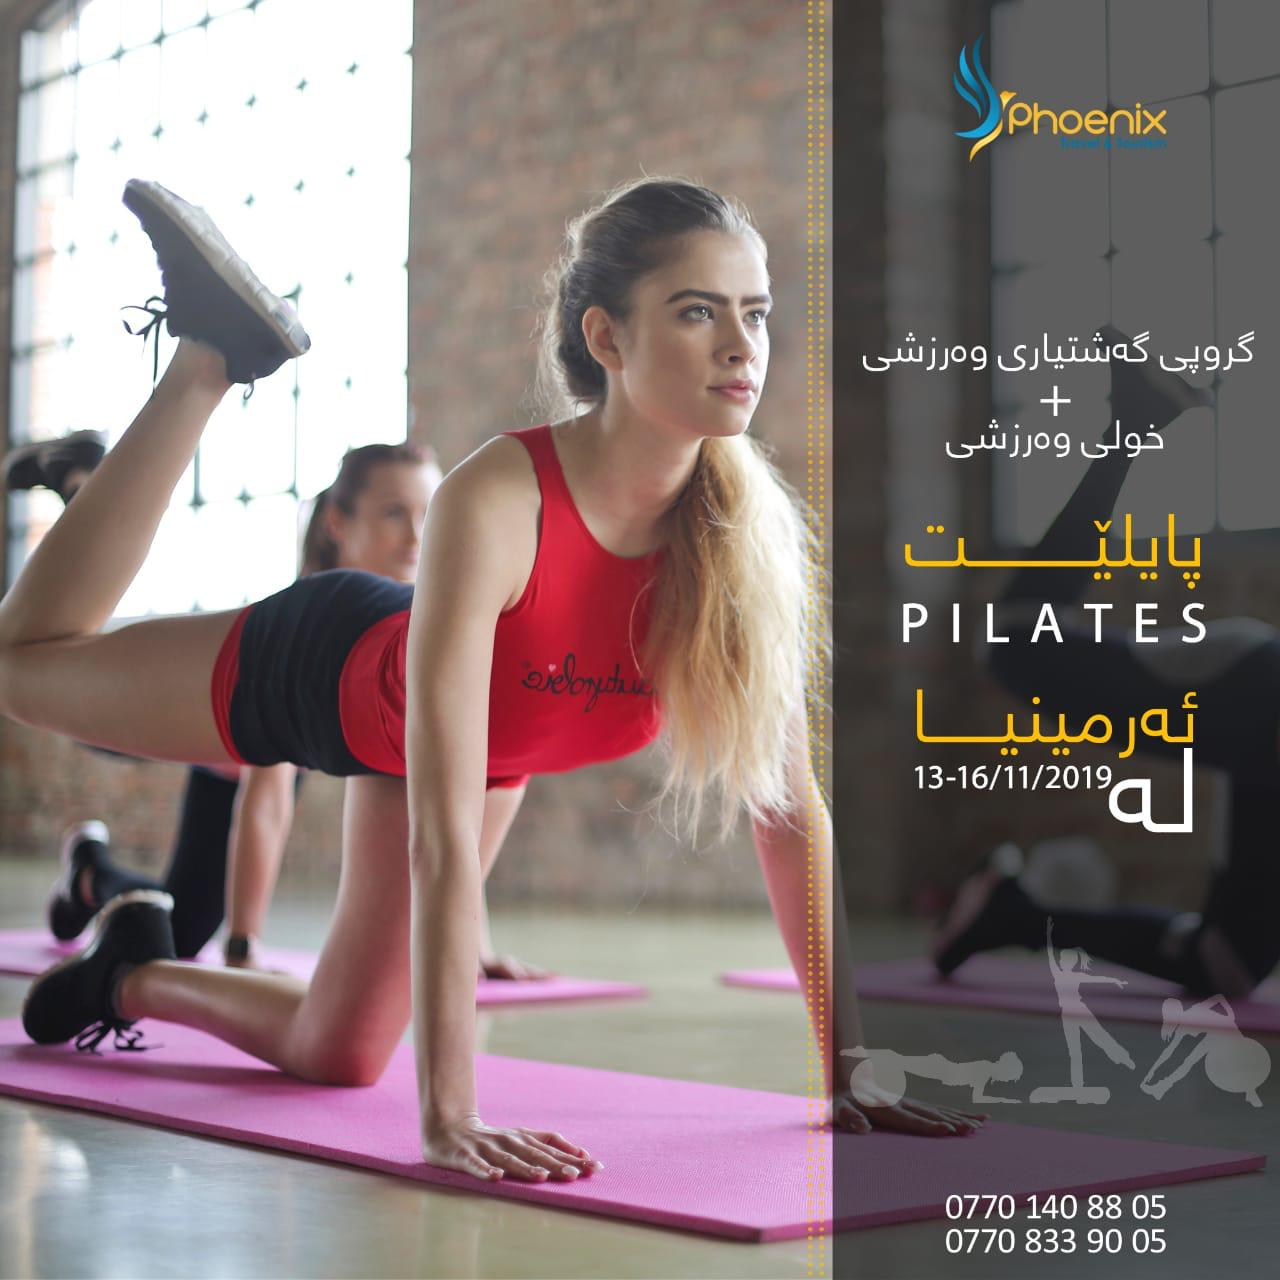 Pilates trainig course